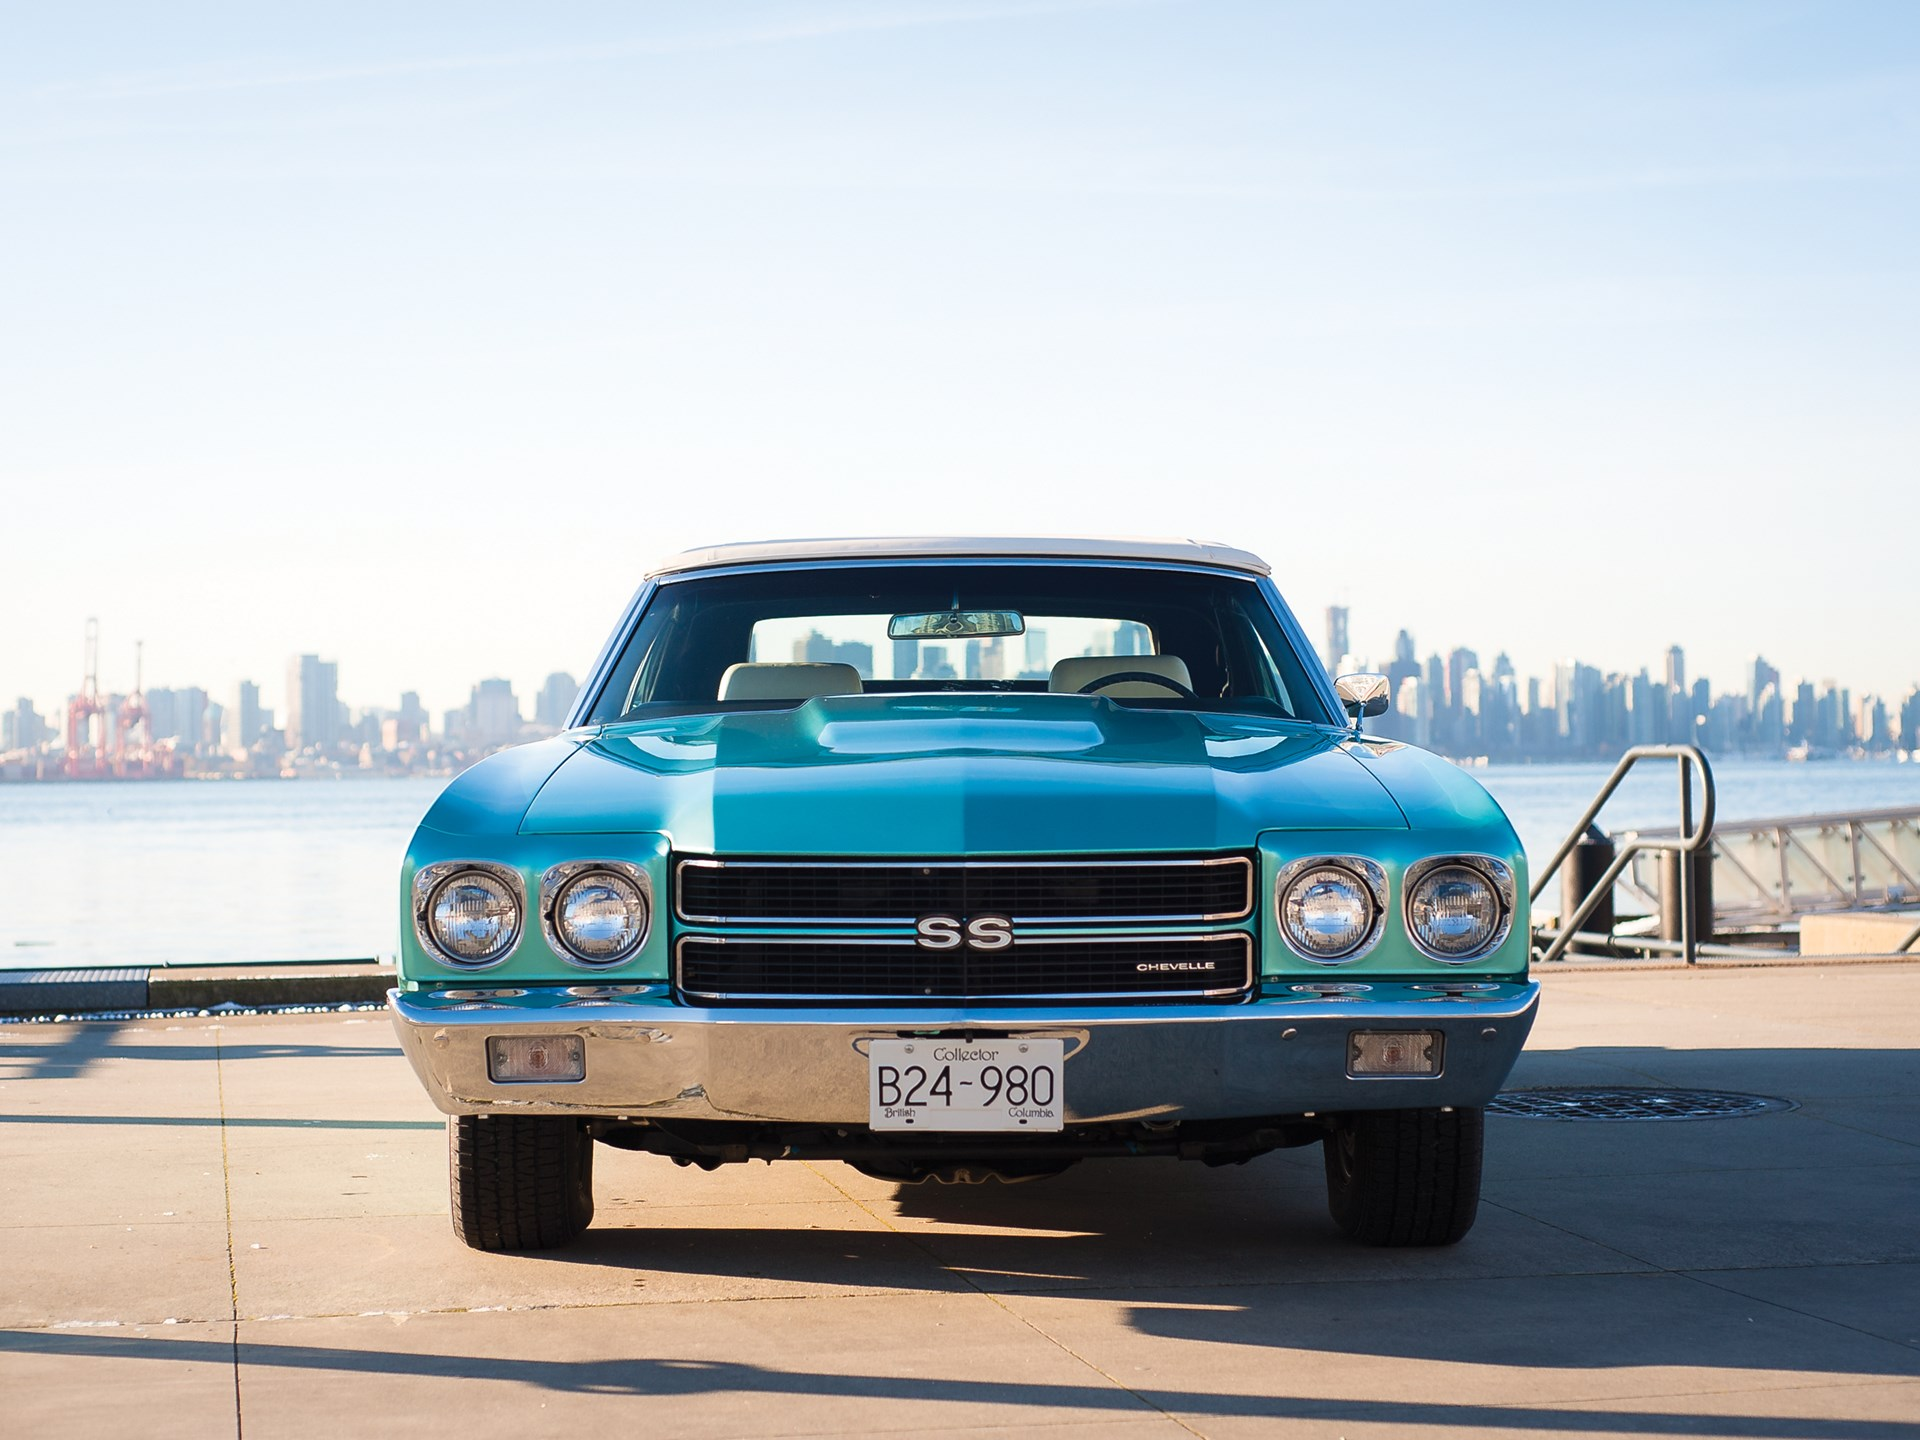 RM Sotheby's - 1970 Chevrolet Chevelle SS 454 LS6